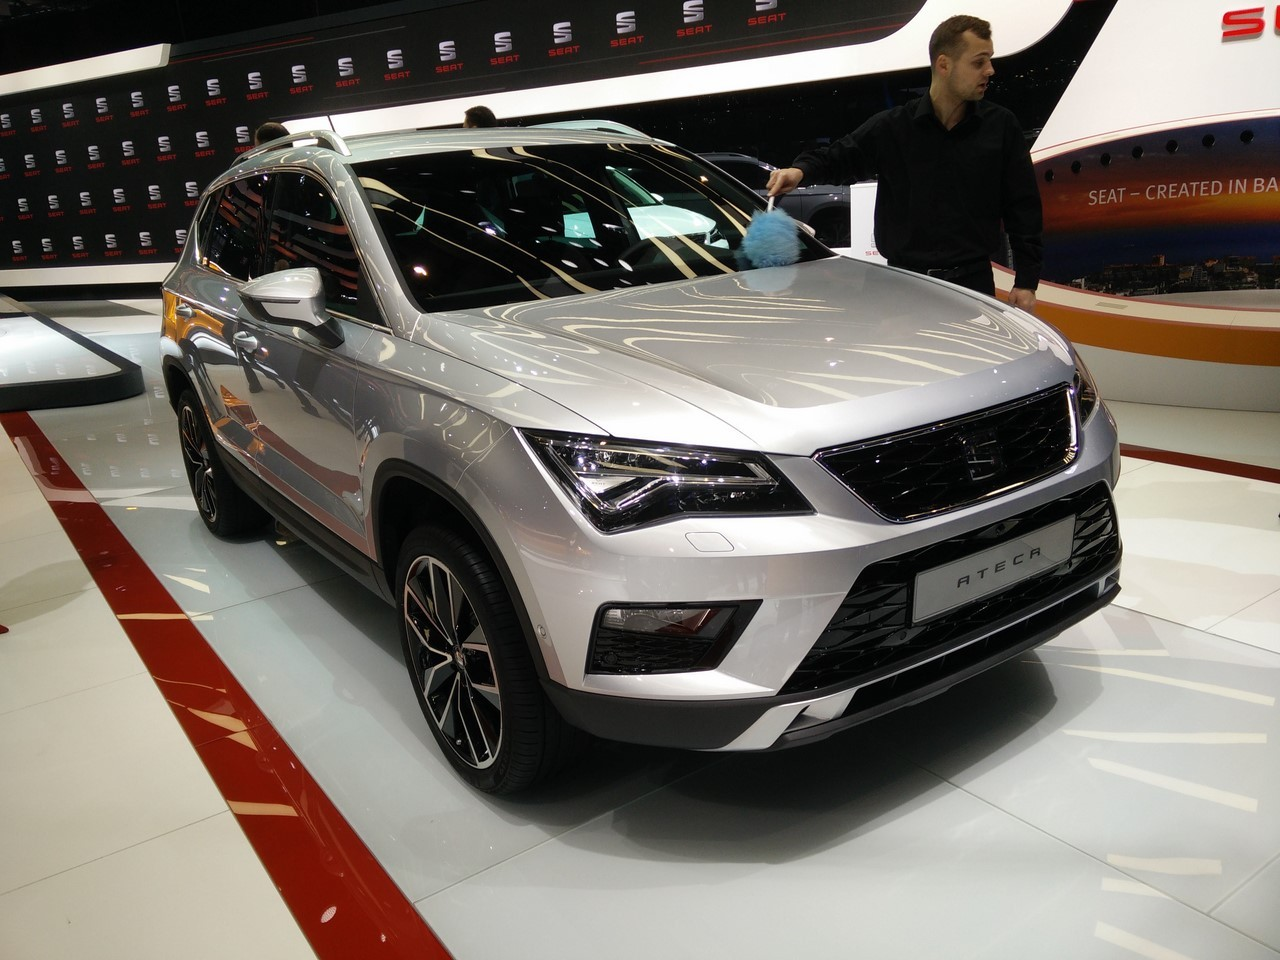 Seat ateca le suv seat entre dans la danse au salon de for Salon de la photo 2016